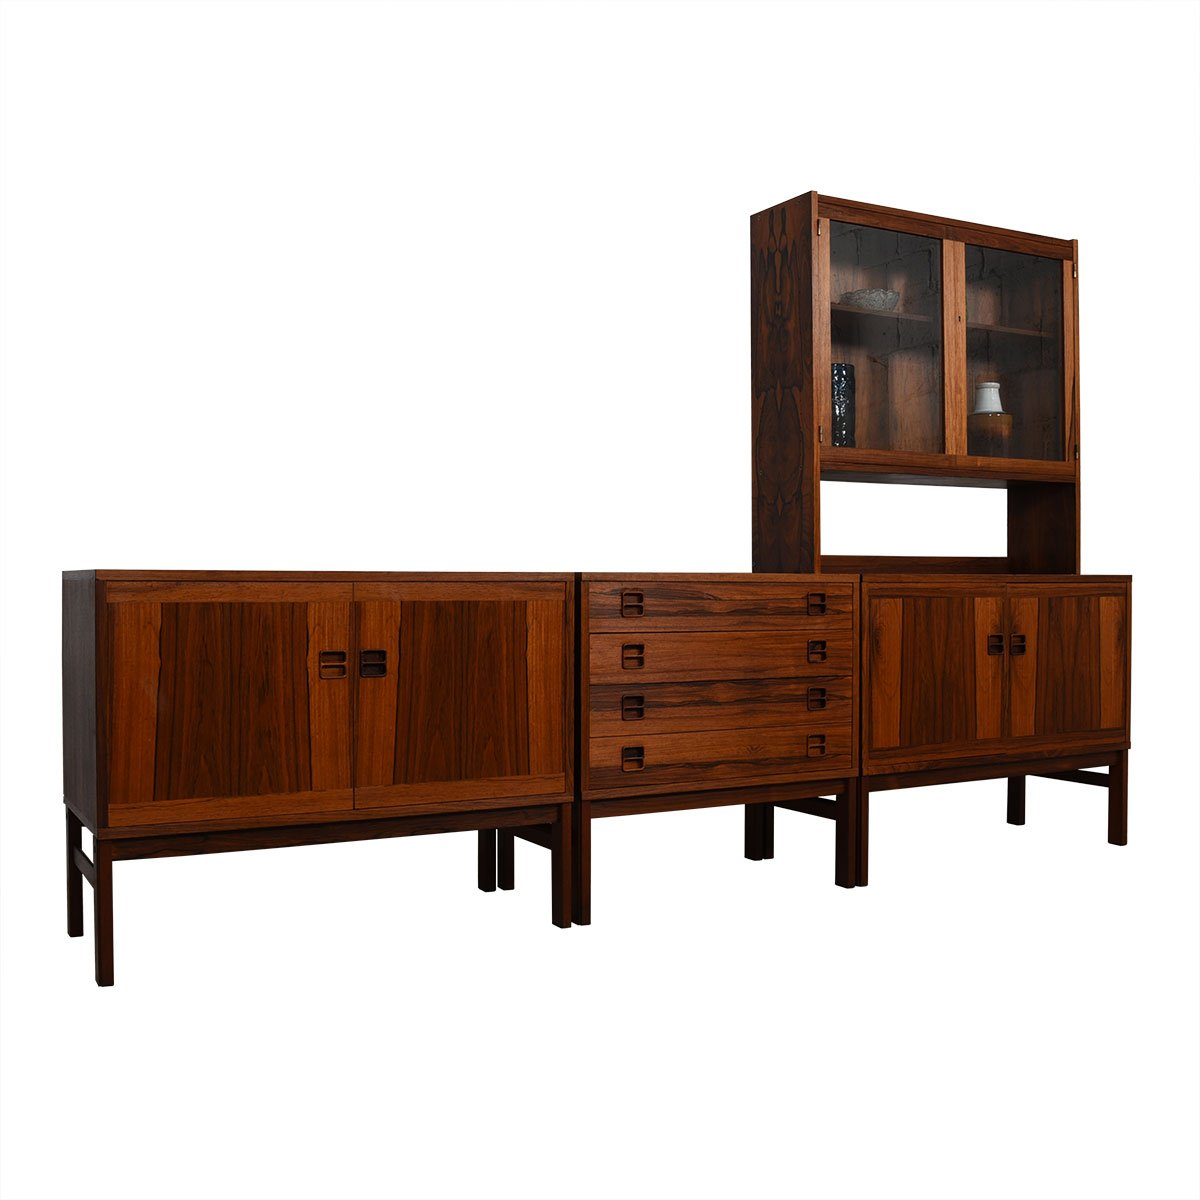 Danish Modern Rosewood Room Divider / Modular Wall Unit Storage